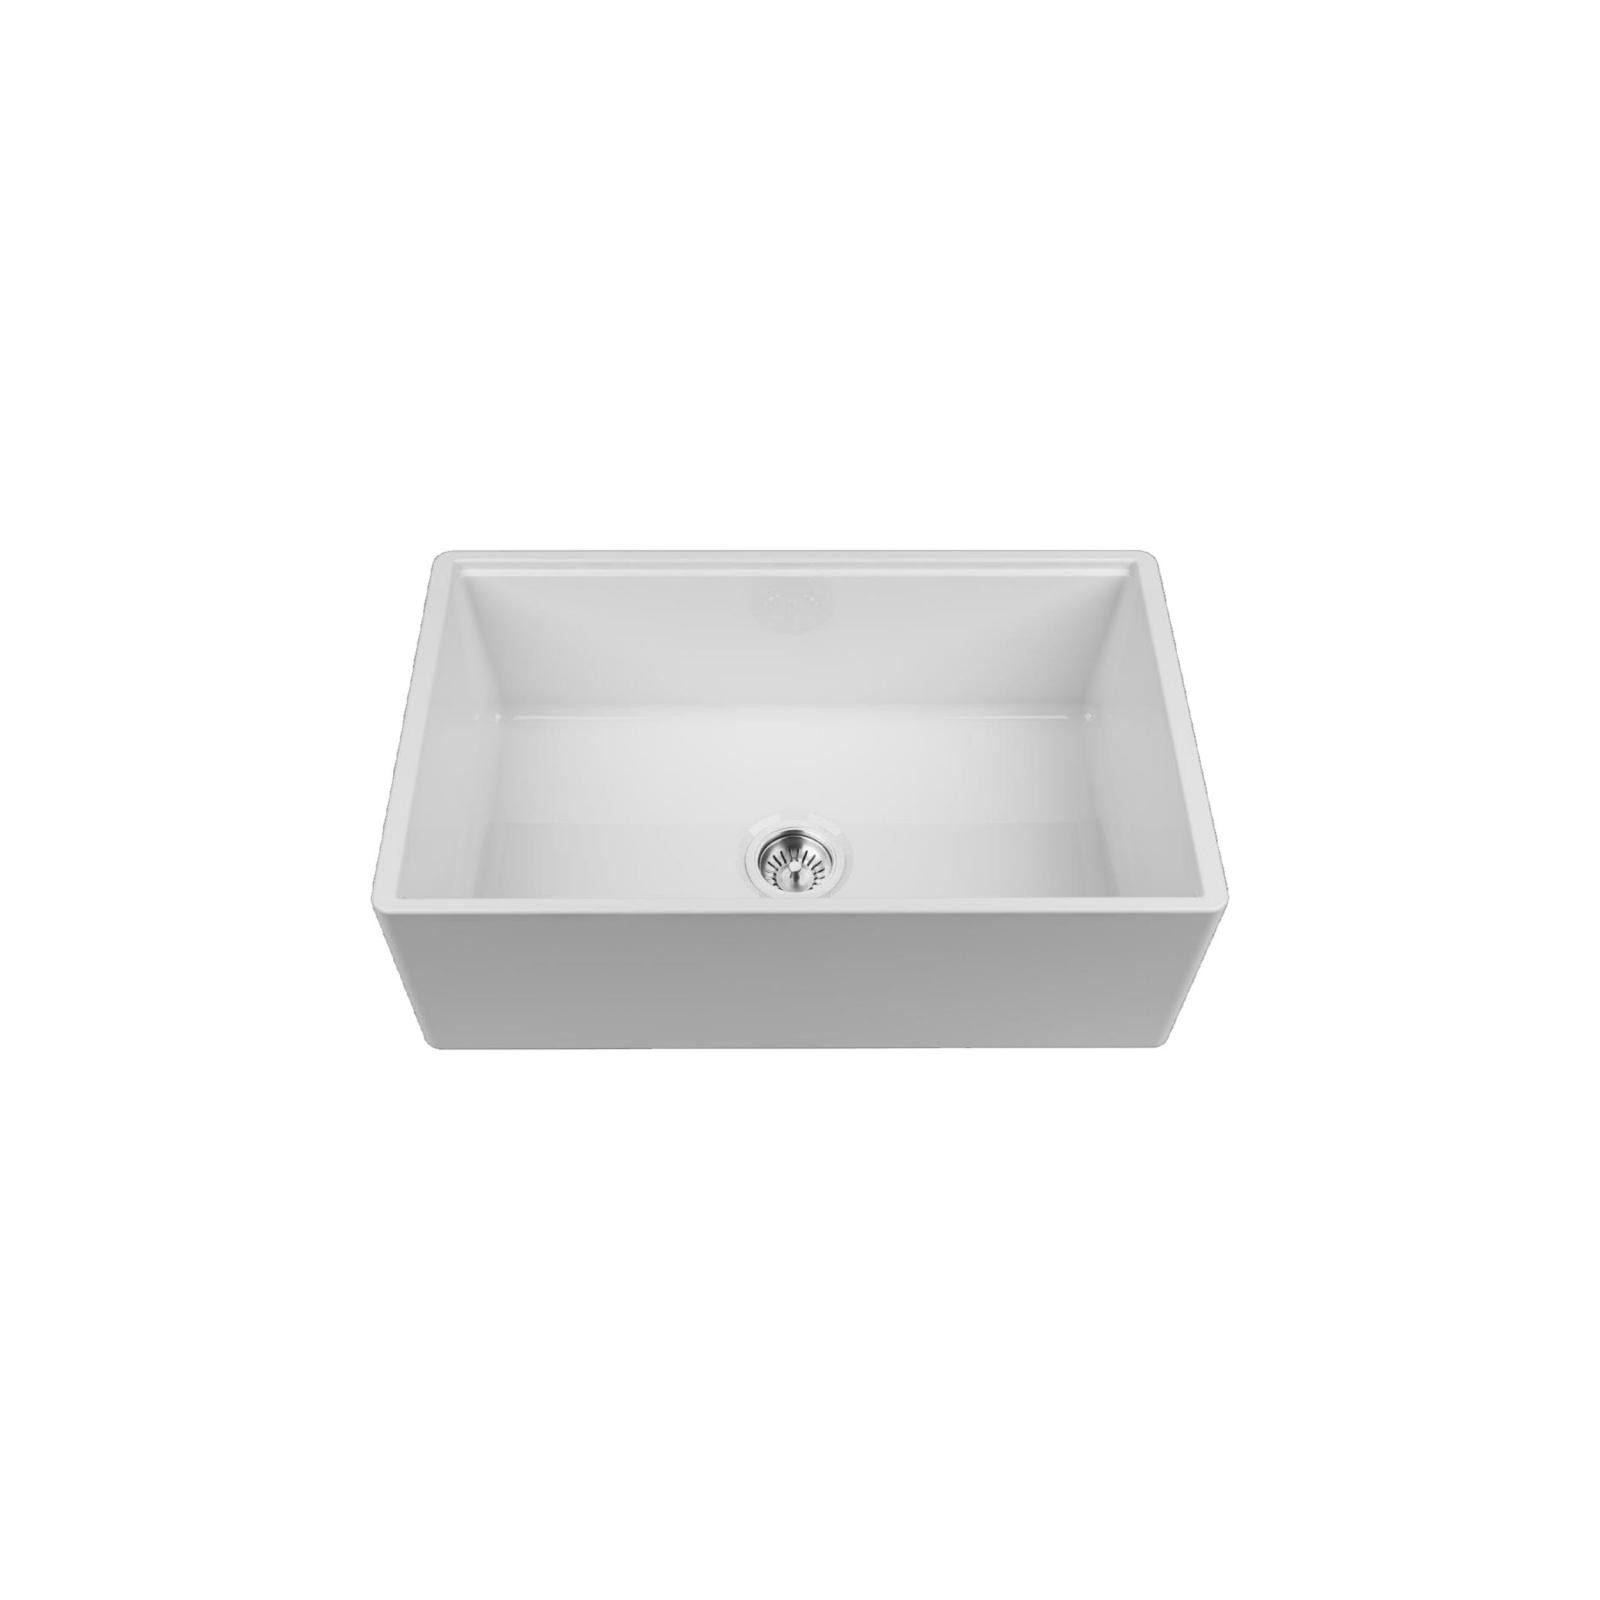 High-quality sink Louis Le Grand I - single bowl, ceramic - 2